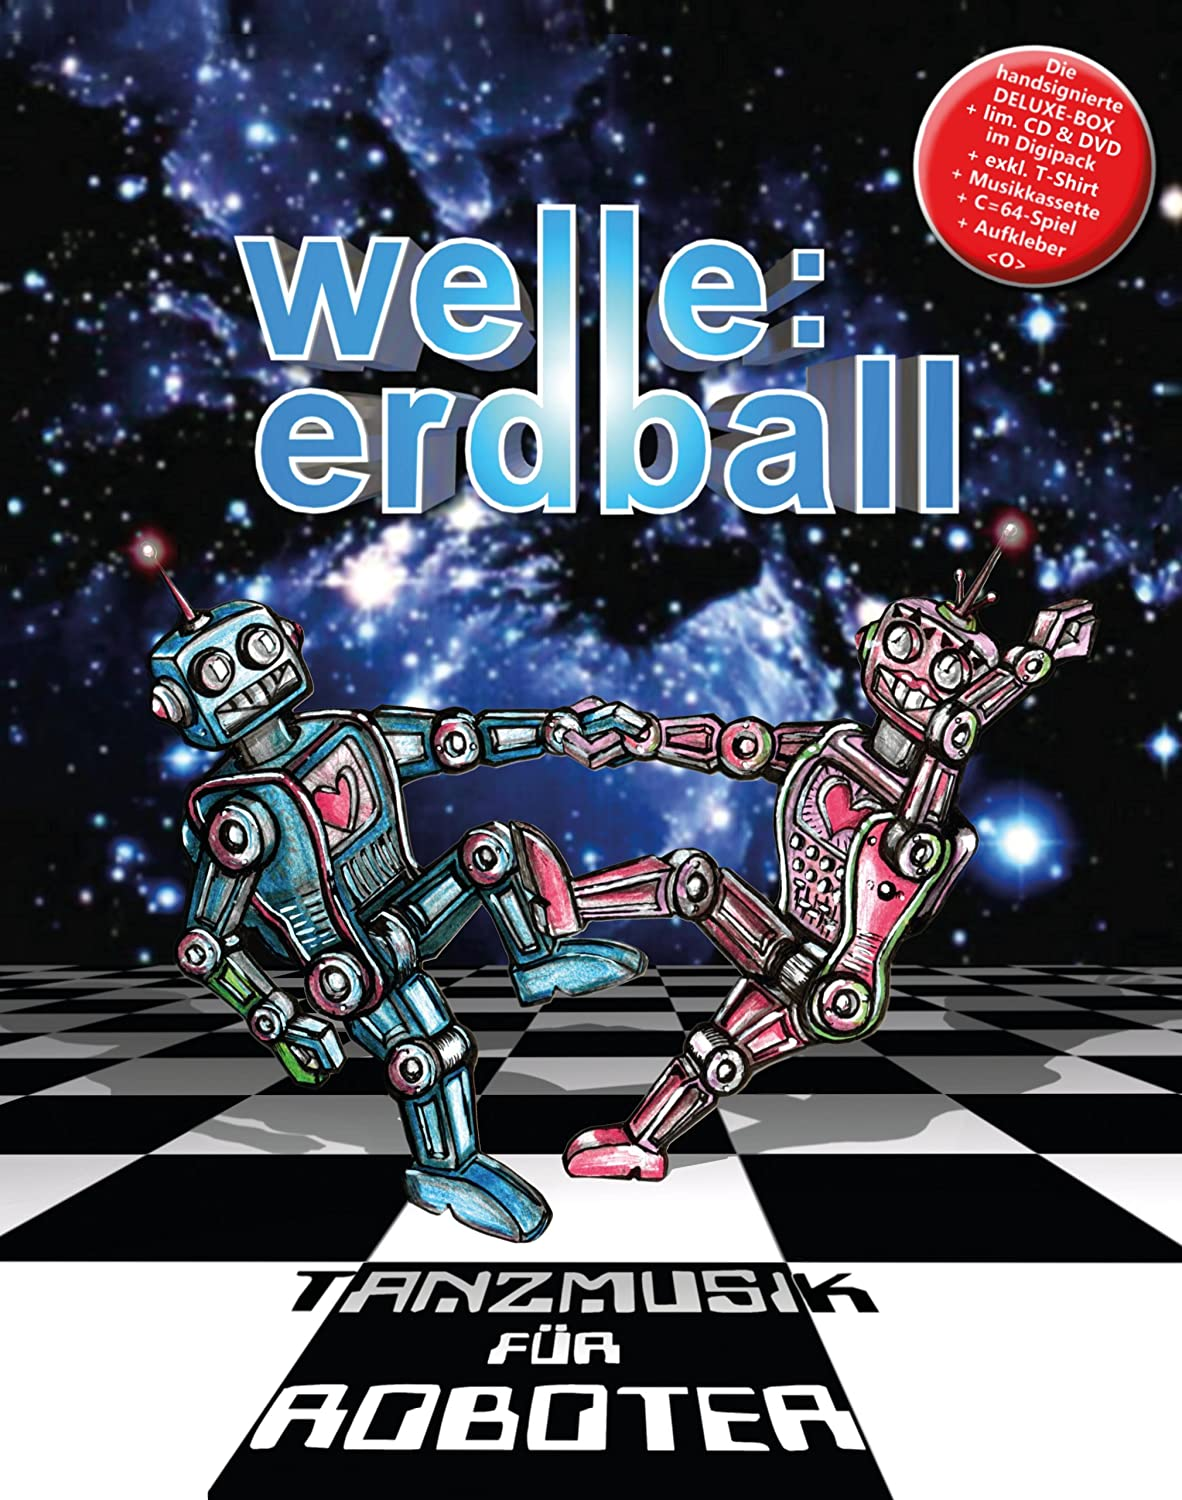 Welle Erdball-Tanzmusik Fuer Roboter-DE-Limited Edition-2014-FWYH Download